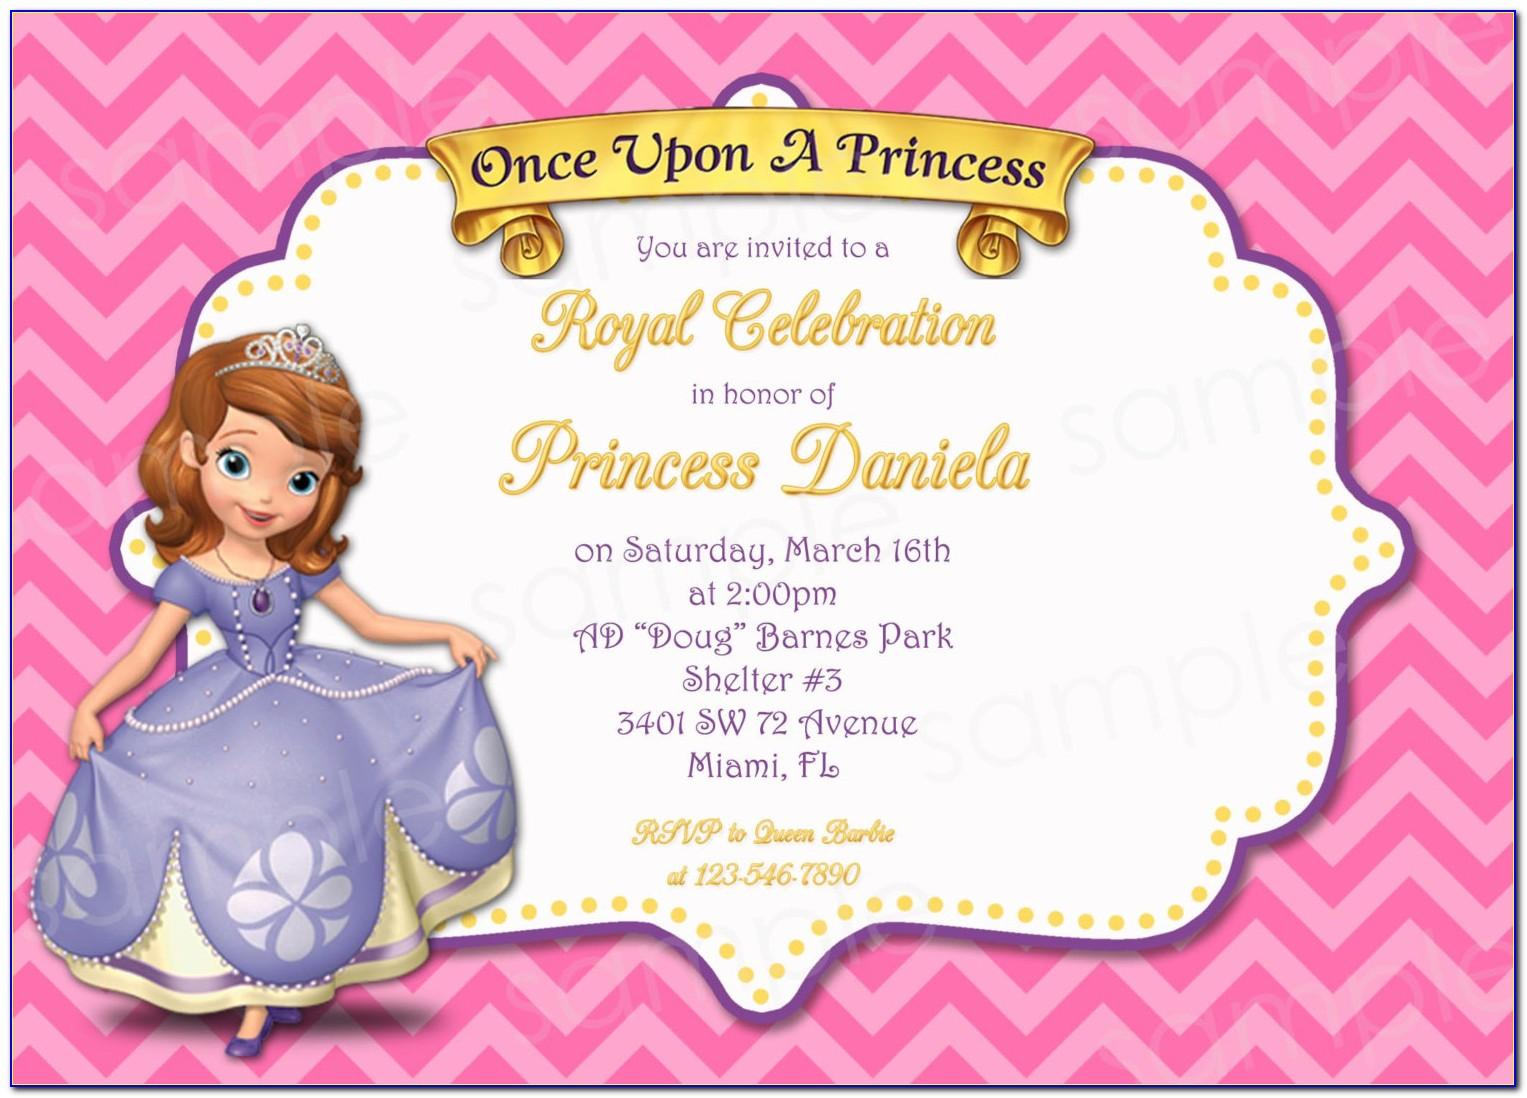 Princess Sofia Invitations Template Free